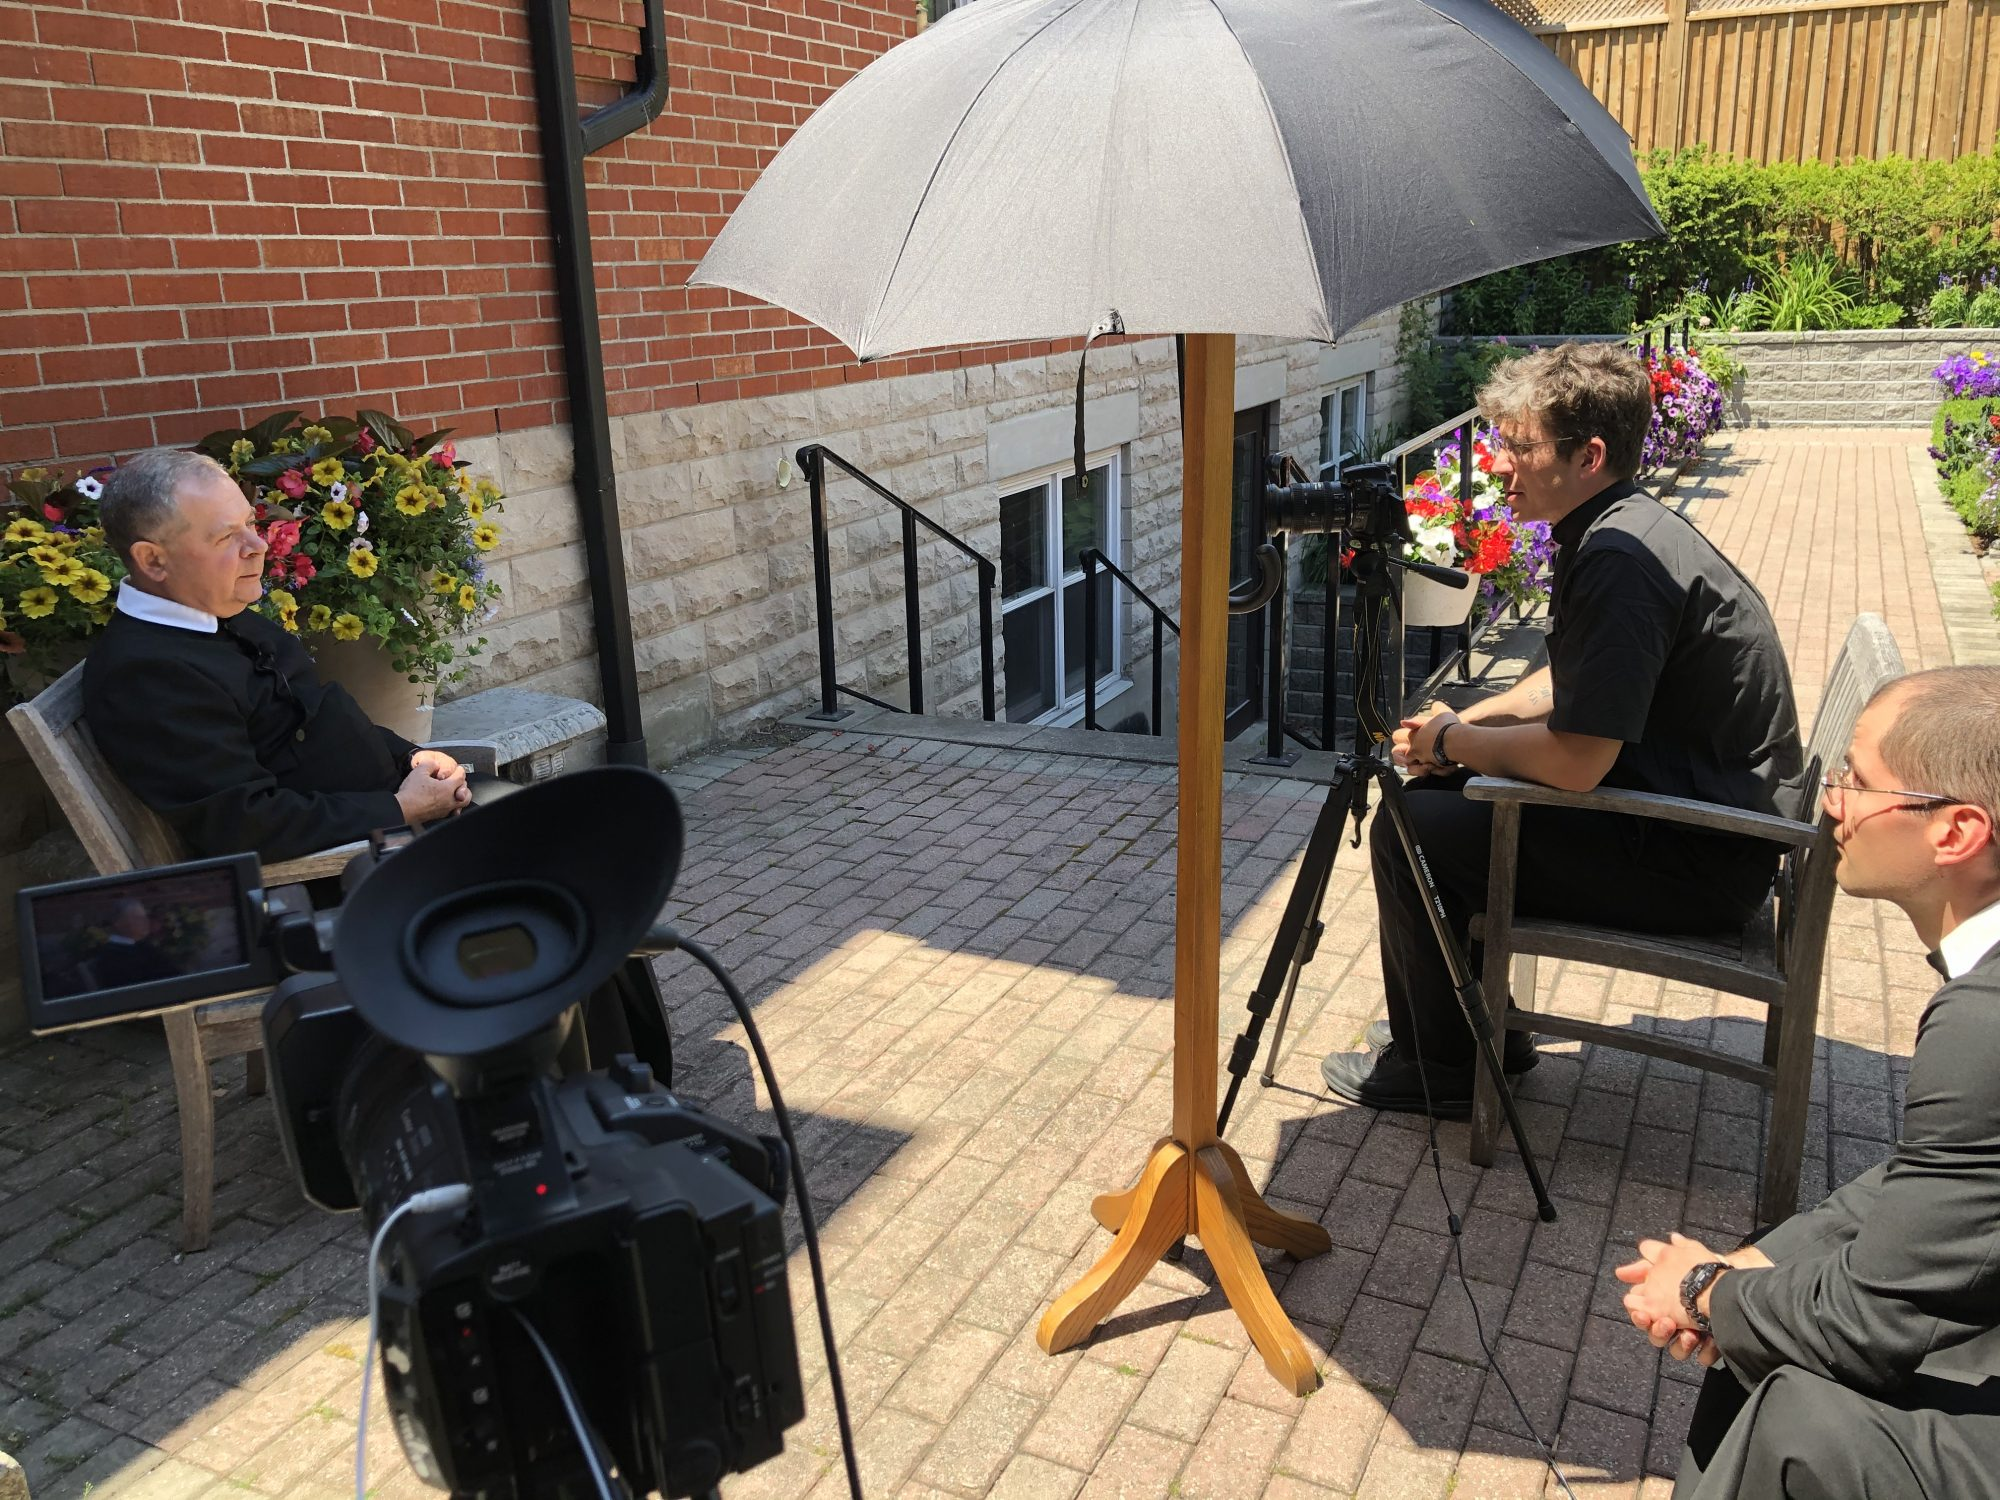 Br Ted is interviewed by Br Carter and Br Bruno in the garden. Filming equipment is visible.